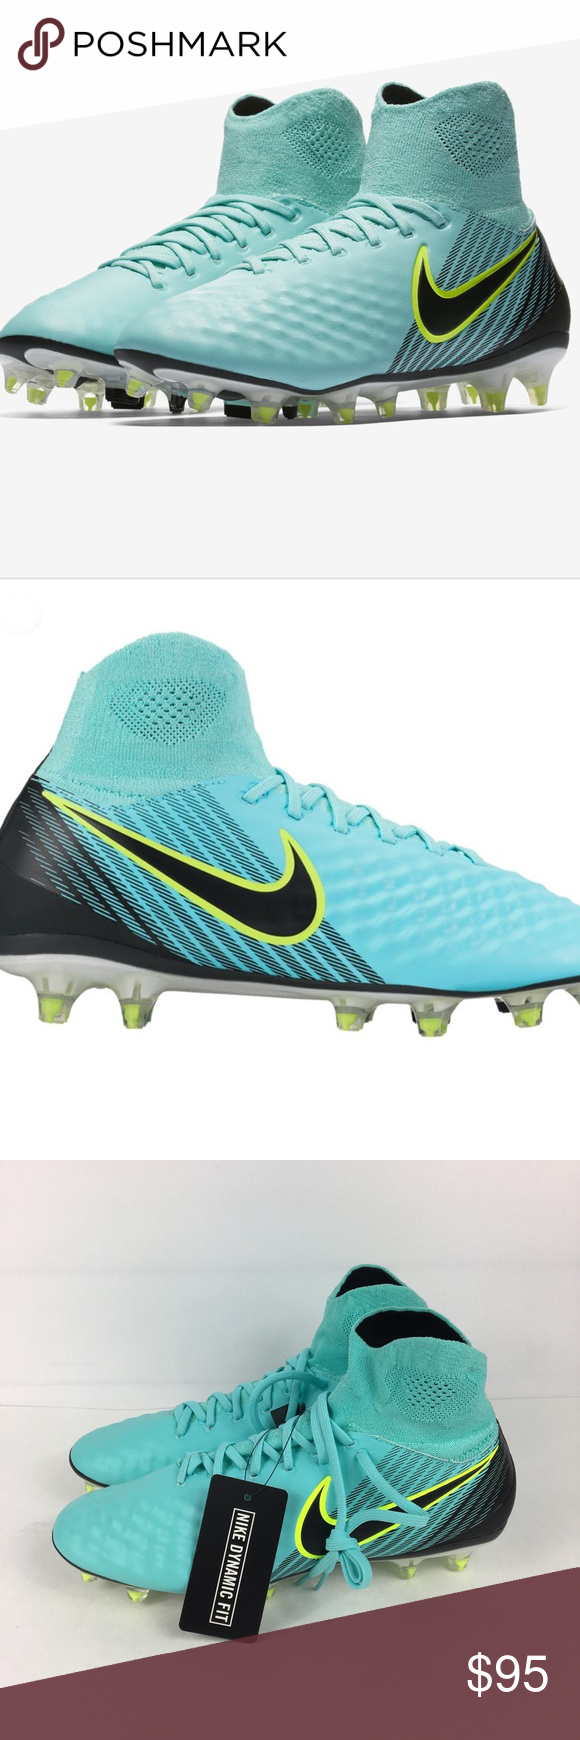 02e97b5a6 Nike Magista Orden II FG Aqua Soccer Cleats Nike Magista Orden II FG Aqua  Soccer Cleats 844223 400 Women s Size 8.5 New without box Nike Shoes  Athletic ...